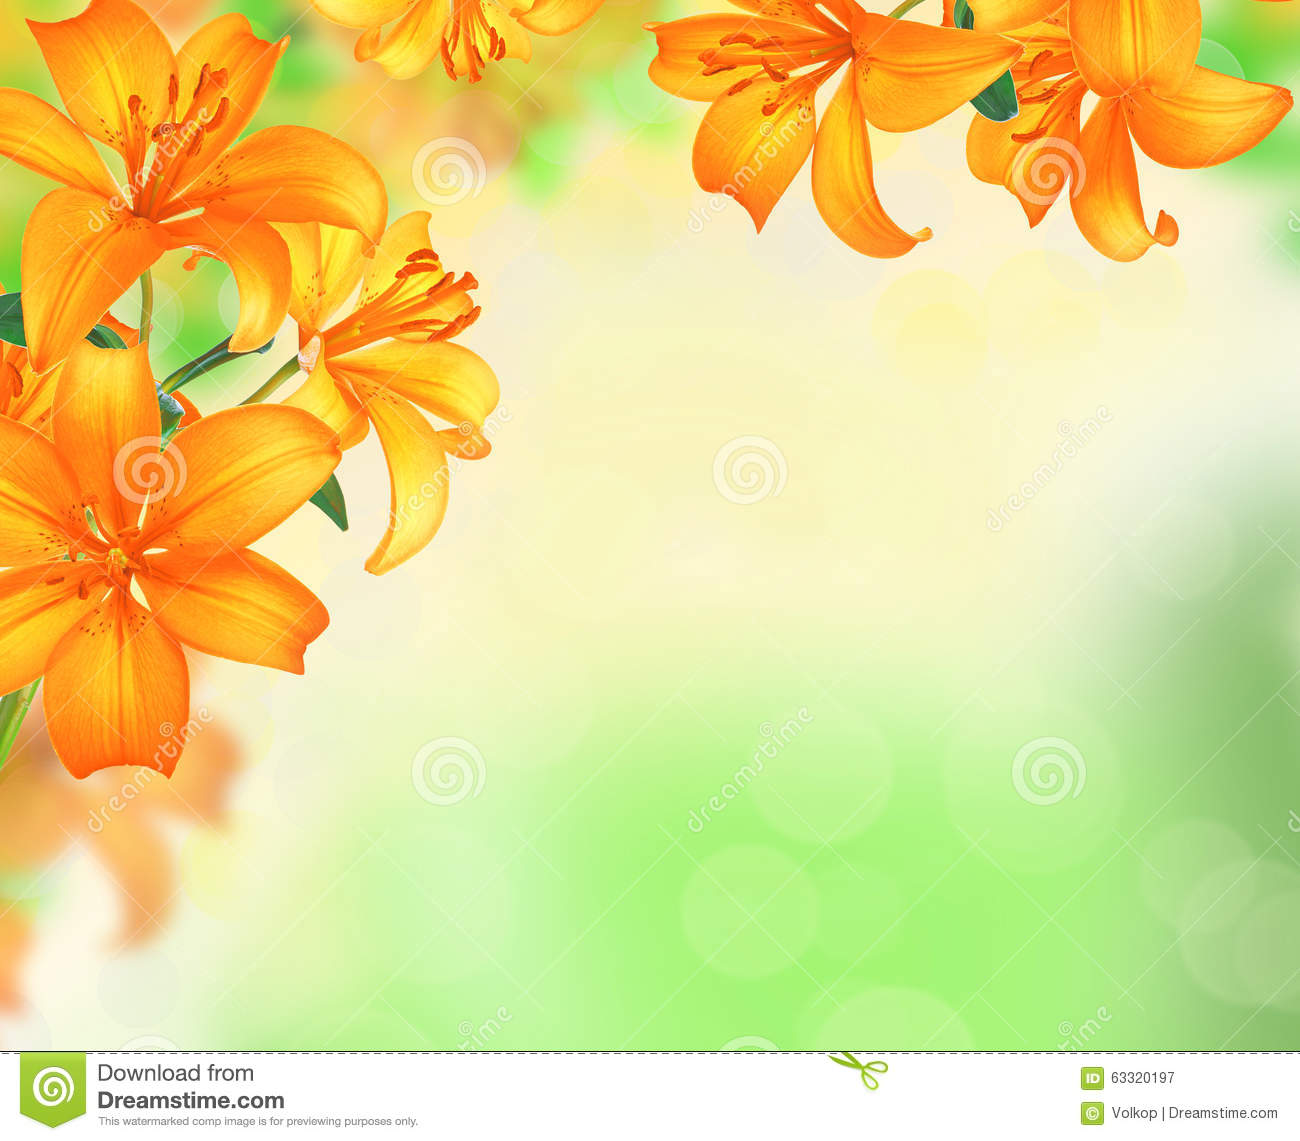 Lily Flowers Border Design Over Blurred Nature Background Stock.